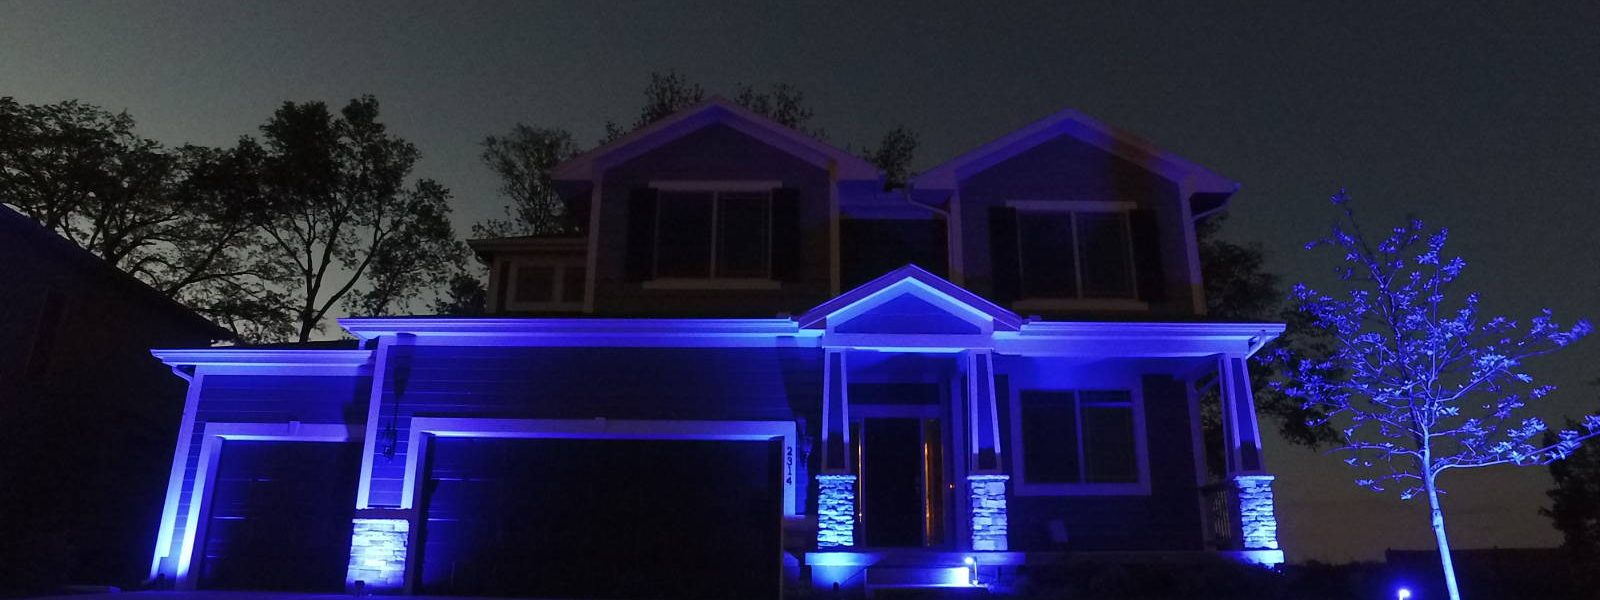 Led Neon Landscape Lights